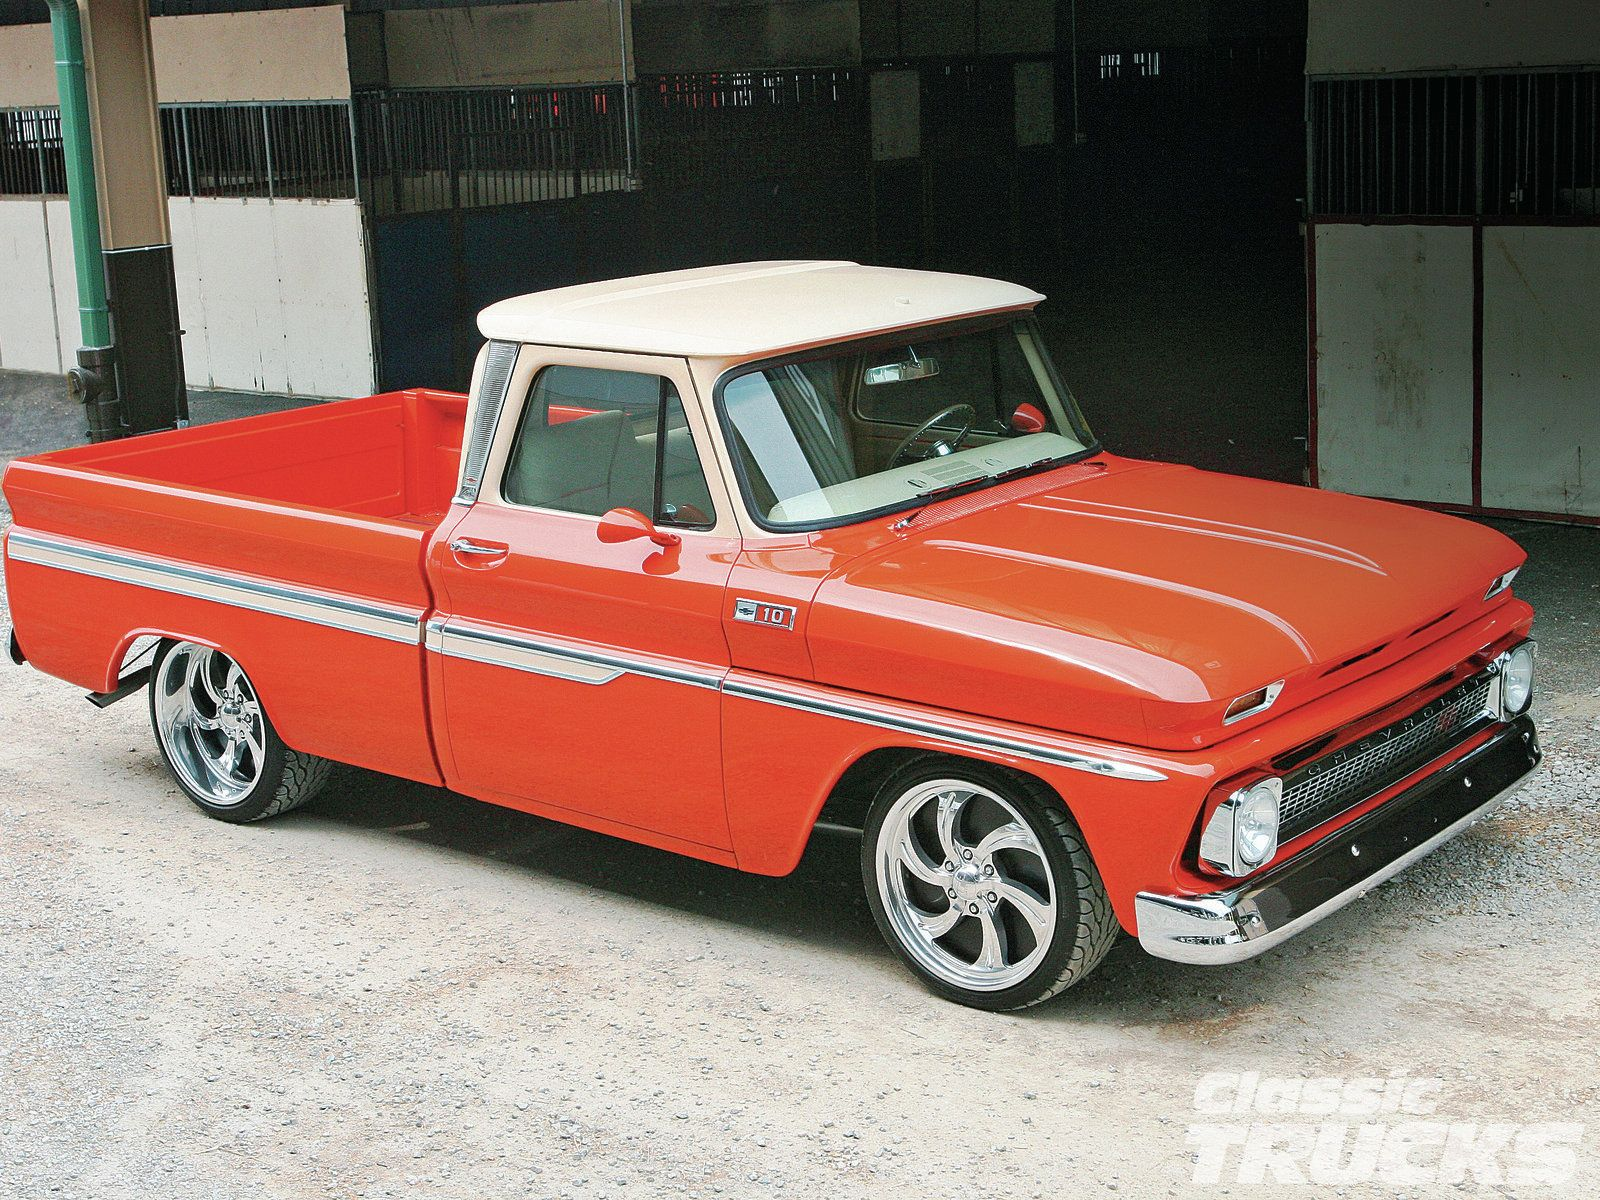 1965 Chevrolet C10 Engine Photo 4 (With images) Classic